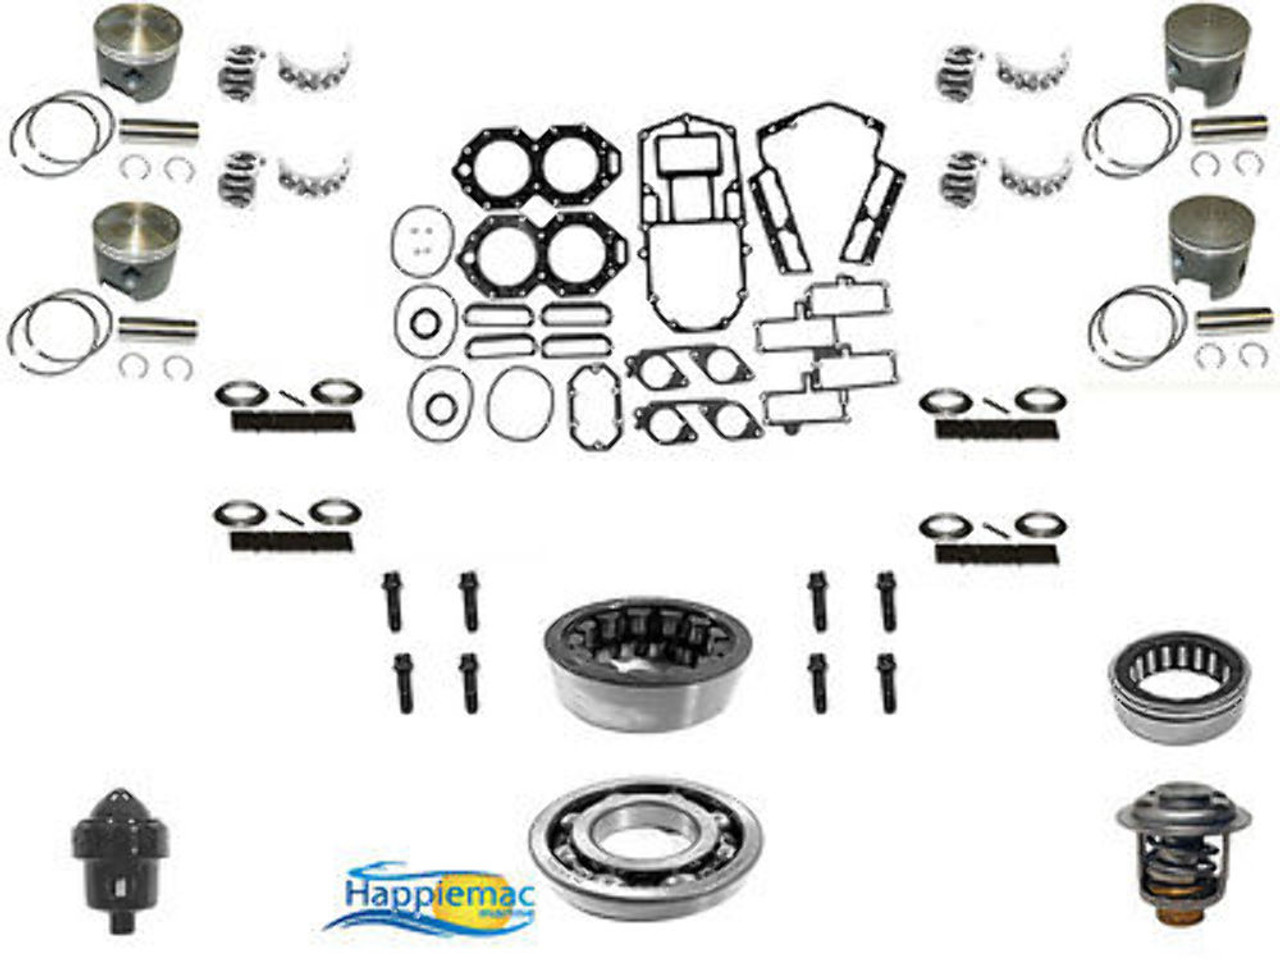 Johnson Evinrude 120 130 140 HP V4 Powerhead Rebuild Kit Gasket Piston  Bearings